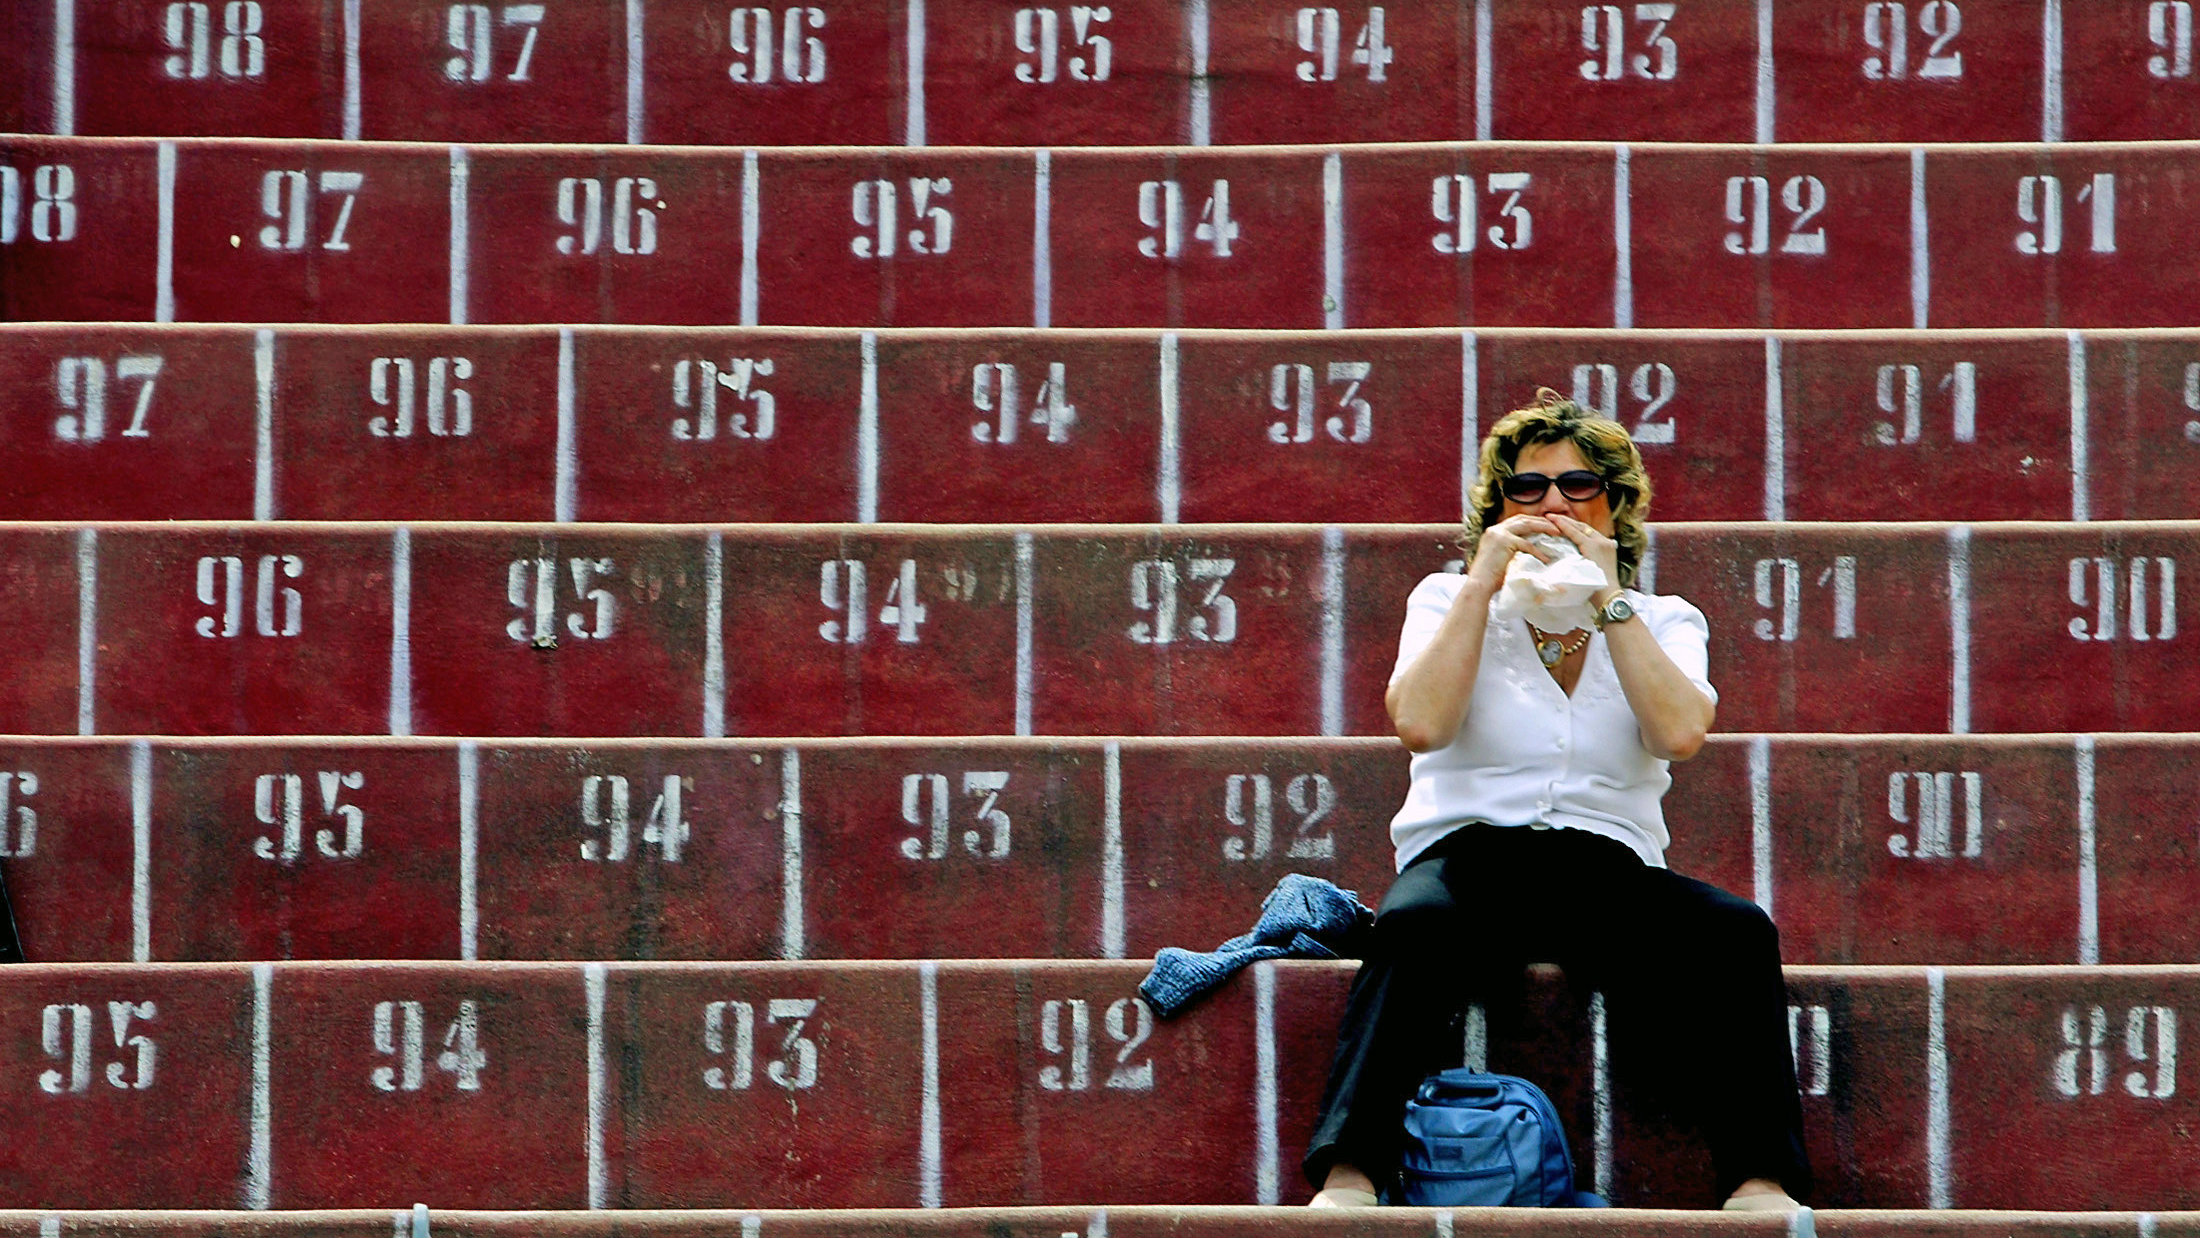 A supporter of Livorno eats a sandwich before the Italian Serie A match against Juventus at the Armando Picchi stadium in Livorno May 22, 2005. REUTERS/Giampiero Sposito GS/KI